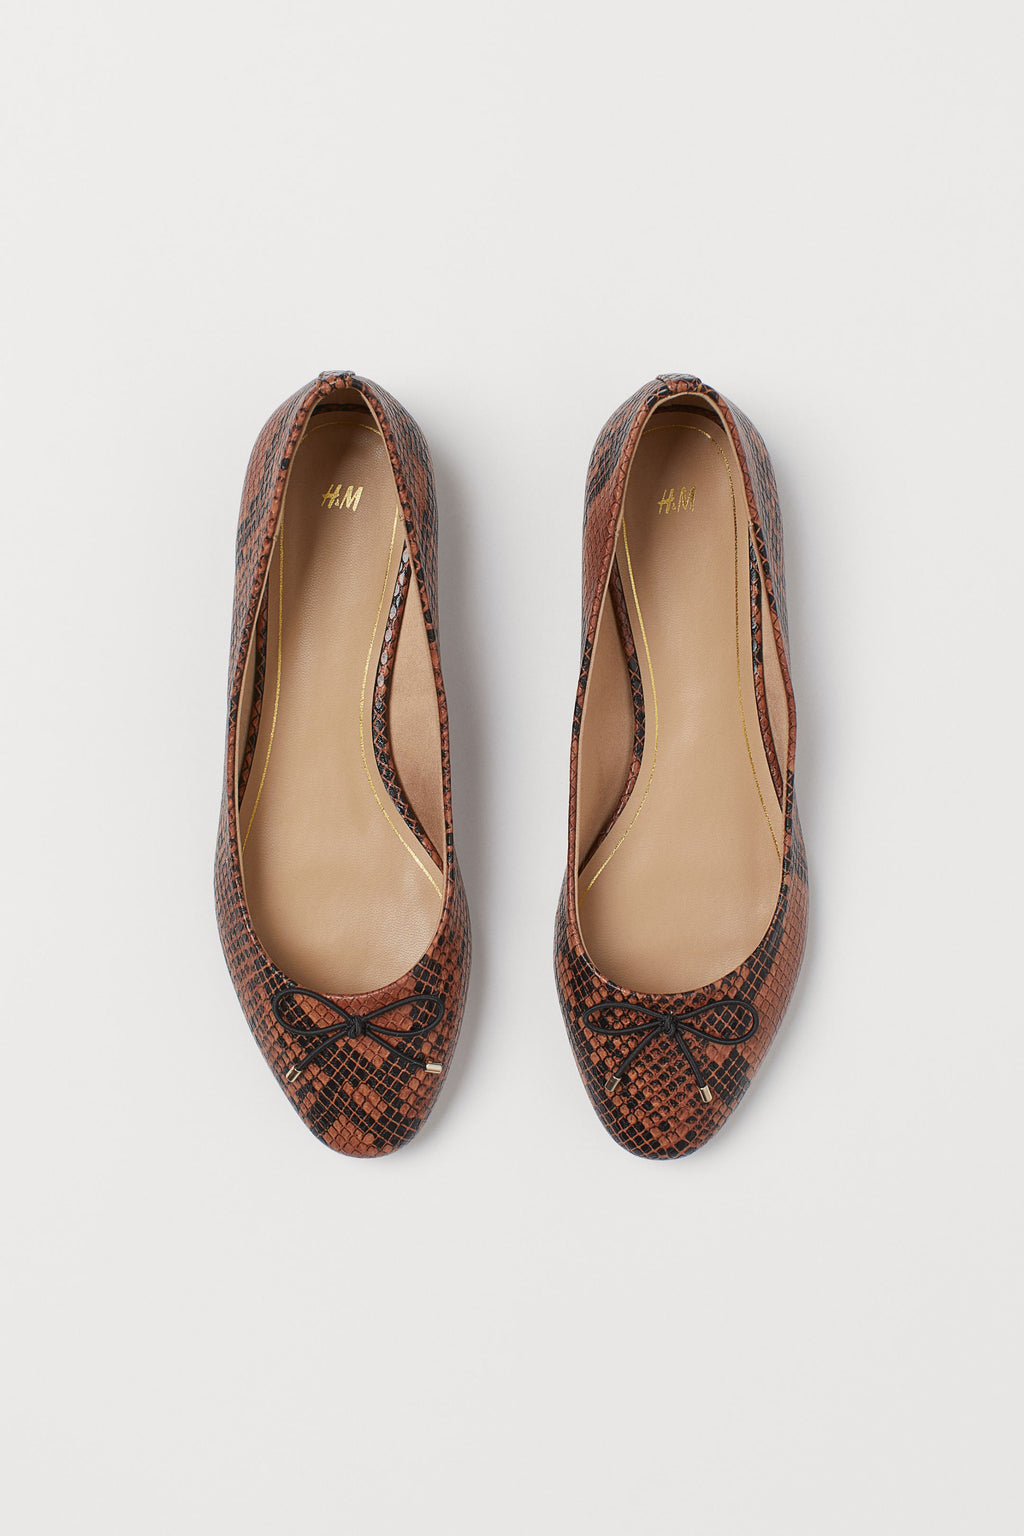 H & M BALLET PUMPS IN BROWN SNAKEPRINT